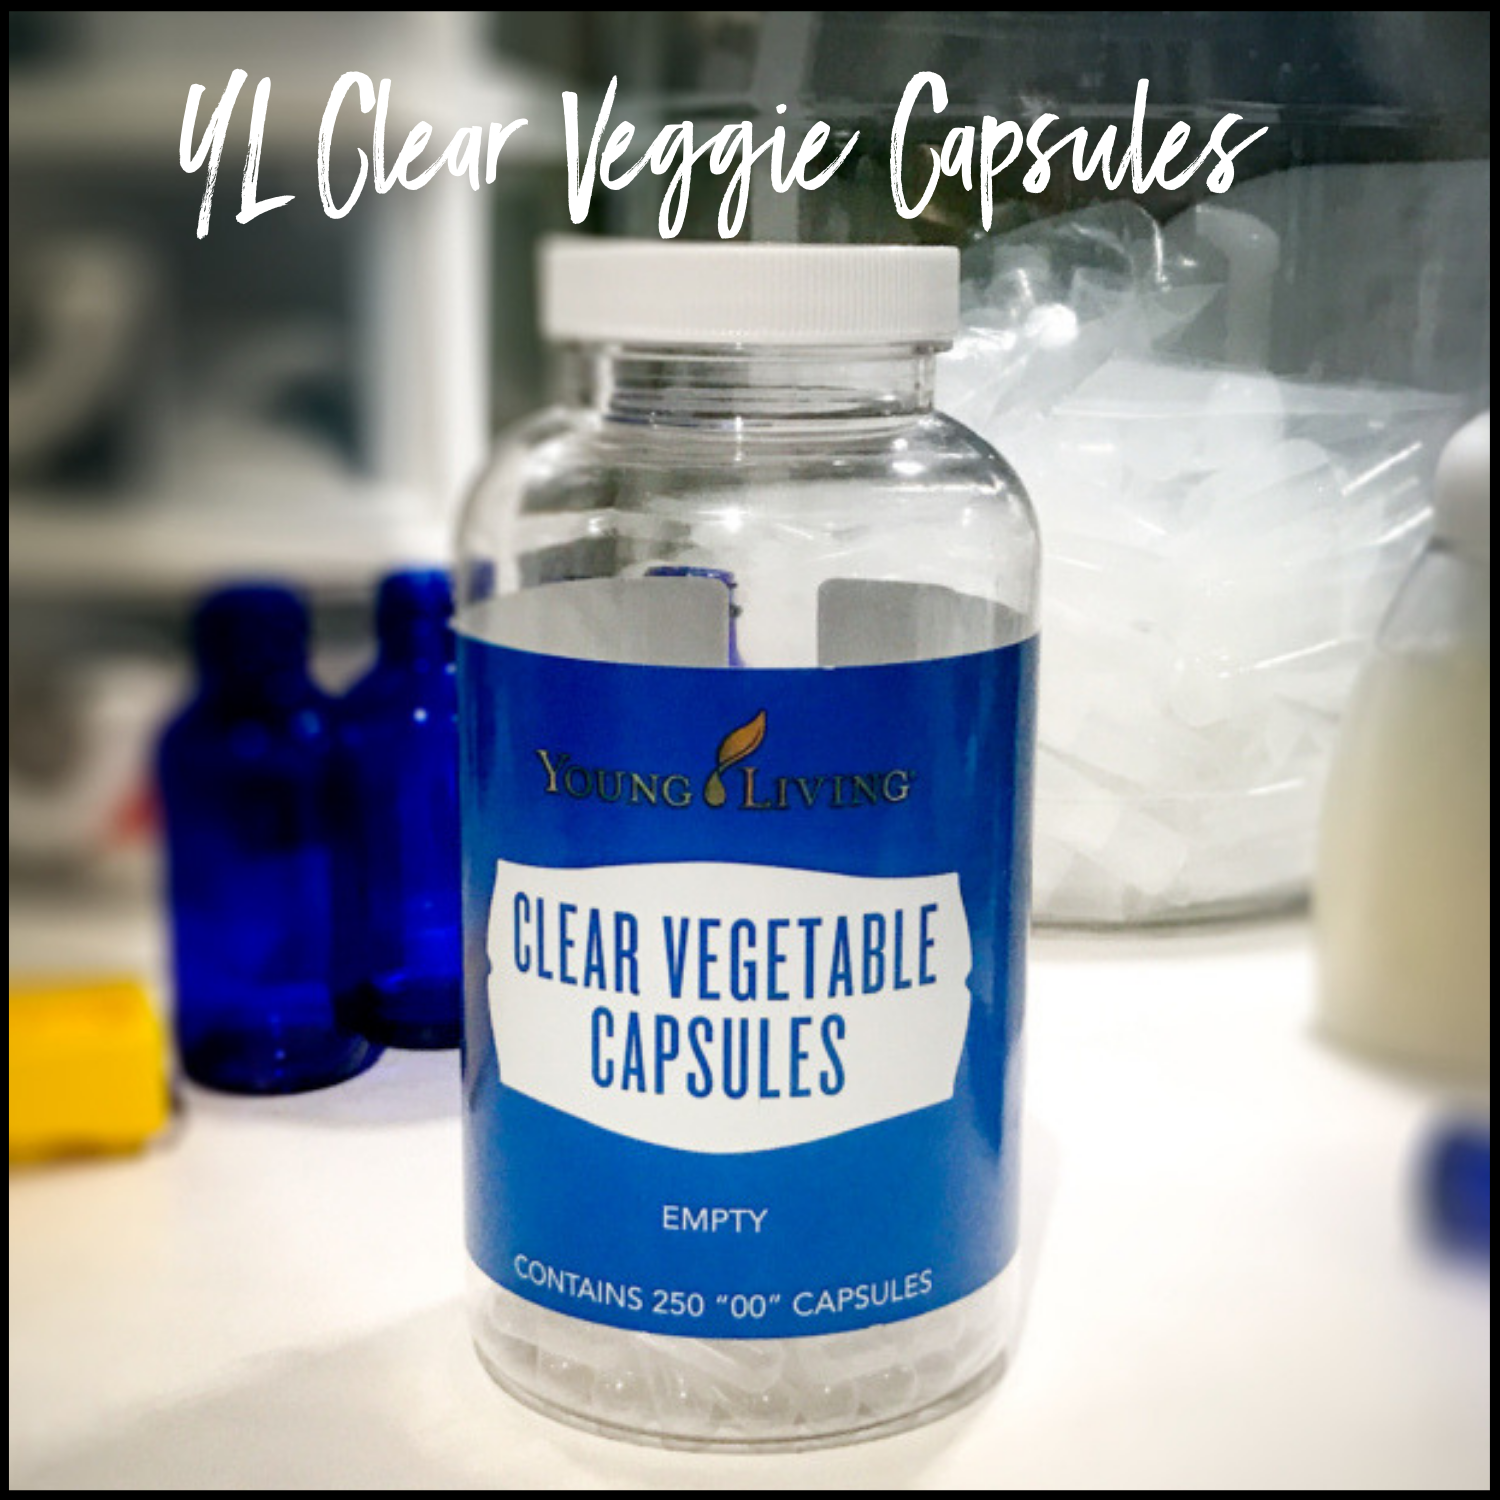 Young Living Clear Vegetable Capsules, Size 00